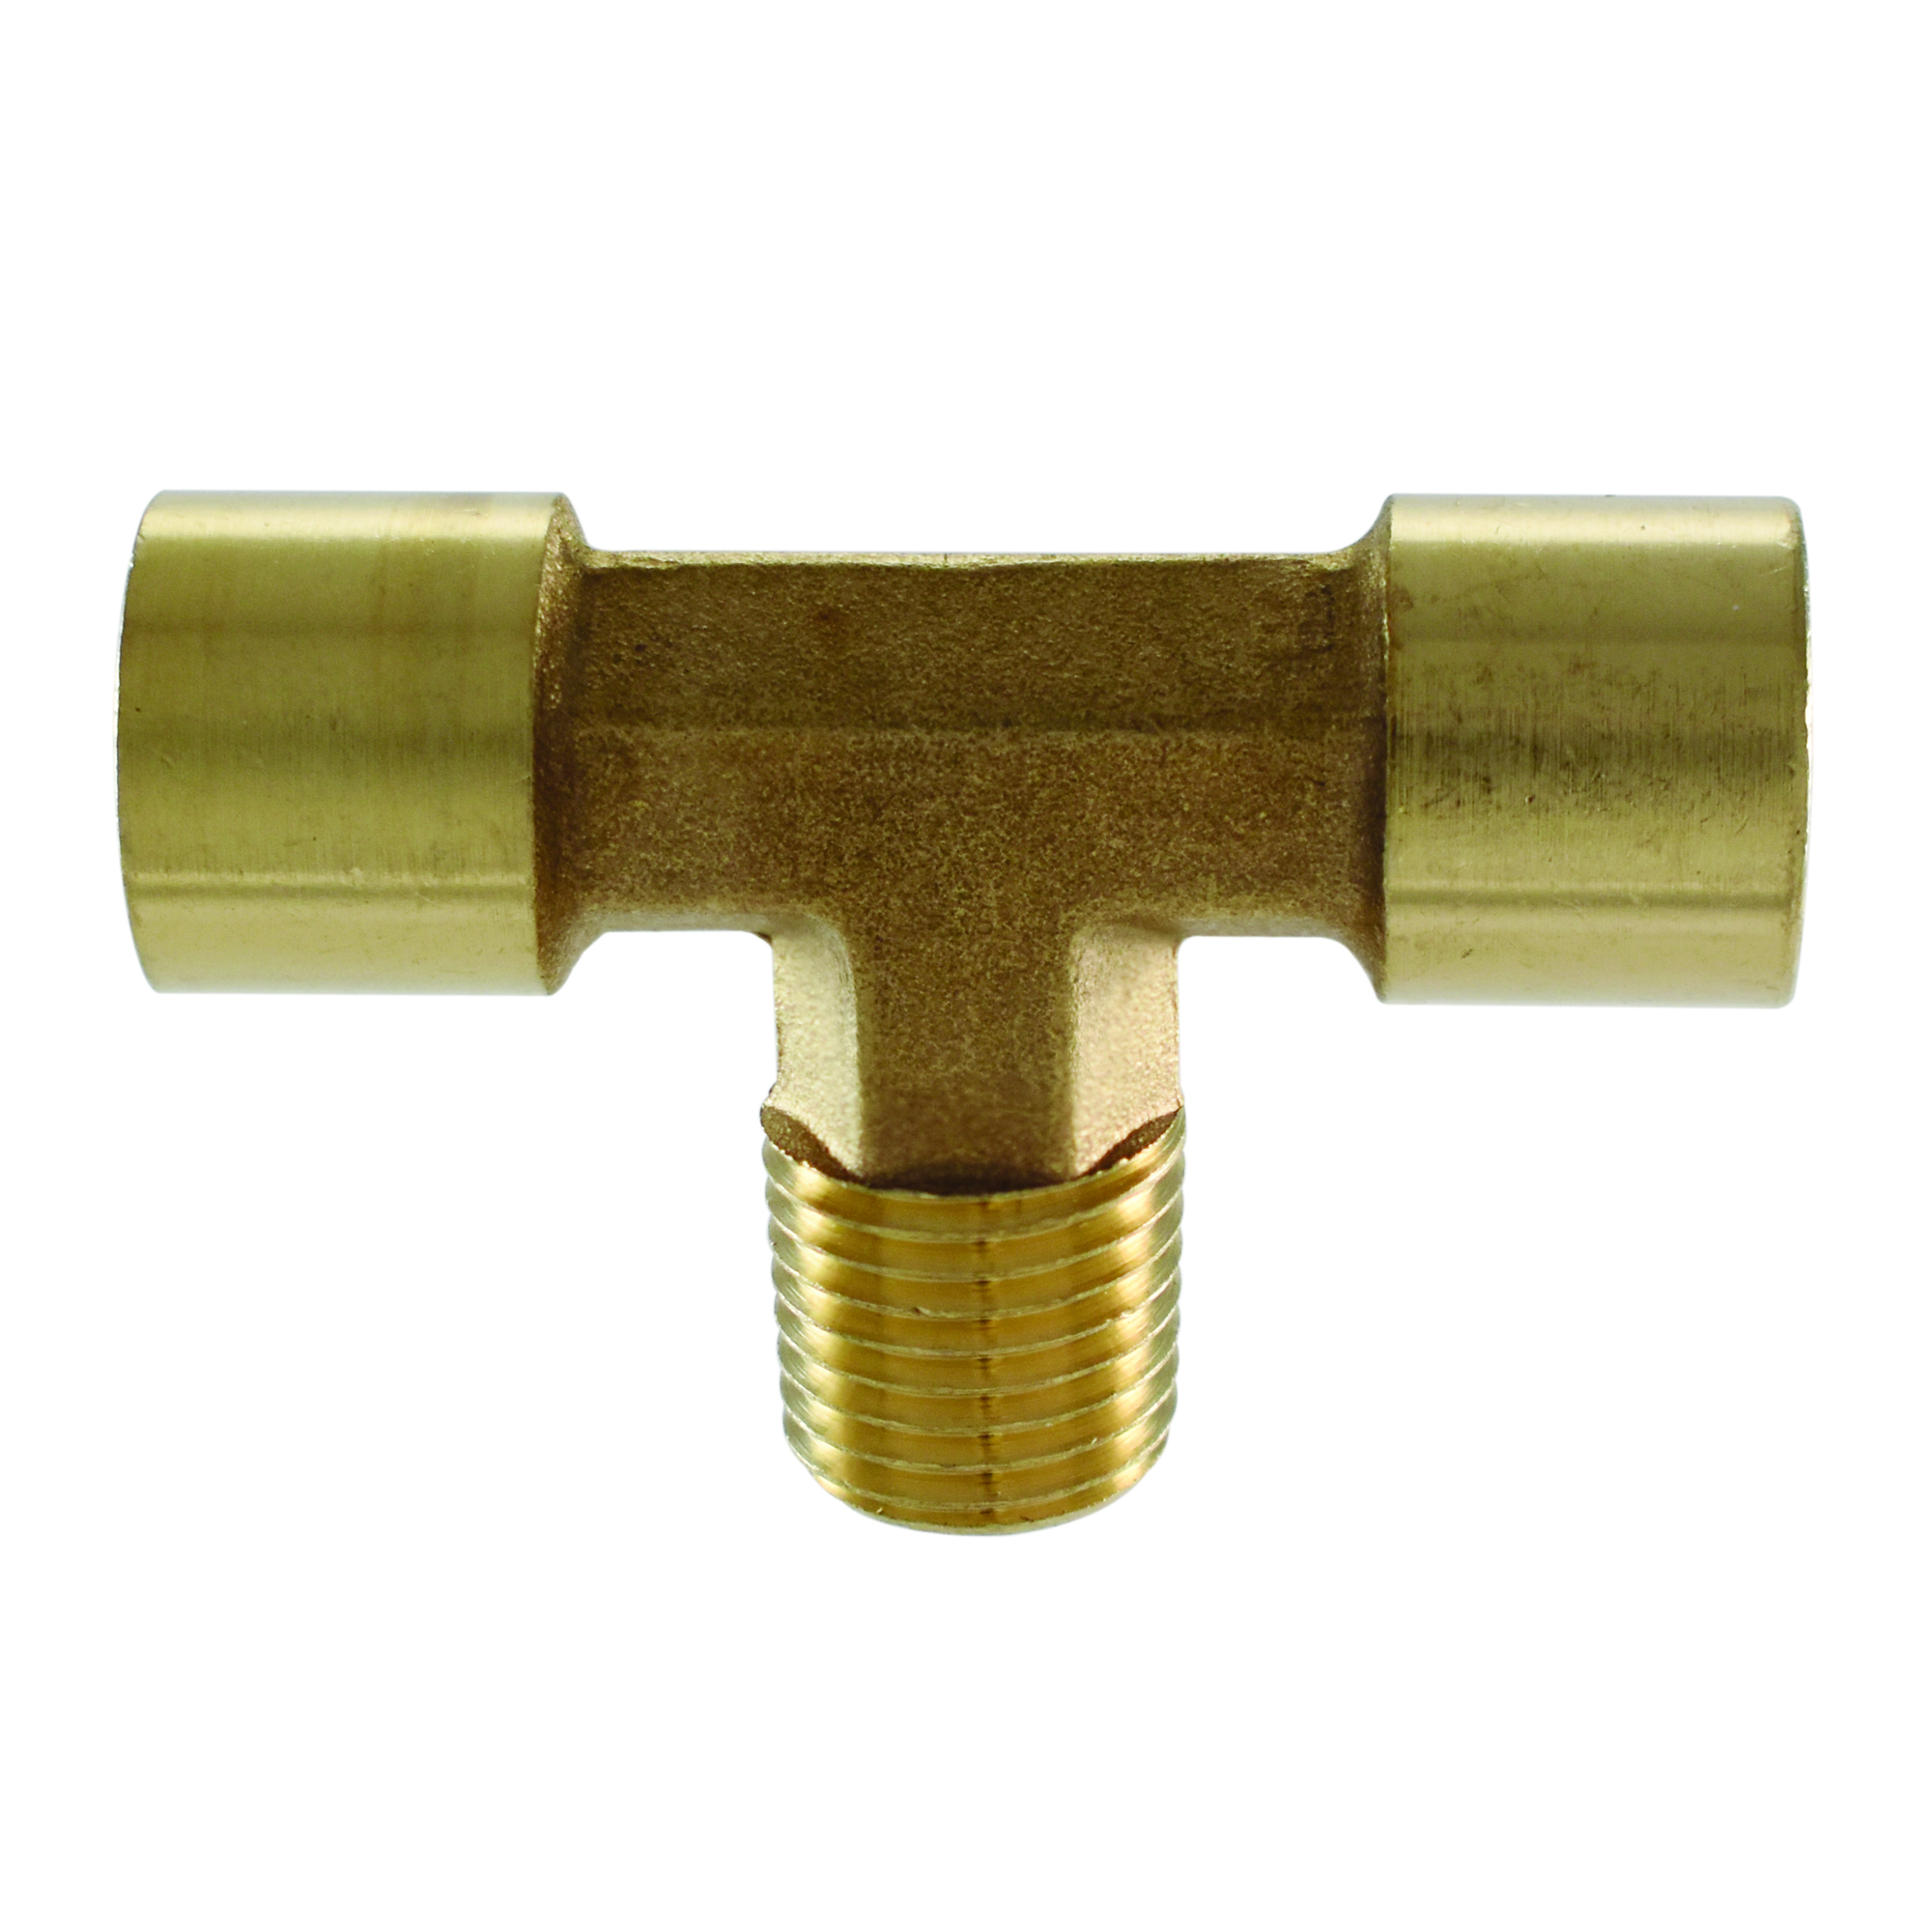 "Campbell Hausfeld T Fitting - 1/4"" NPT (PA104000AV) product image center"